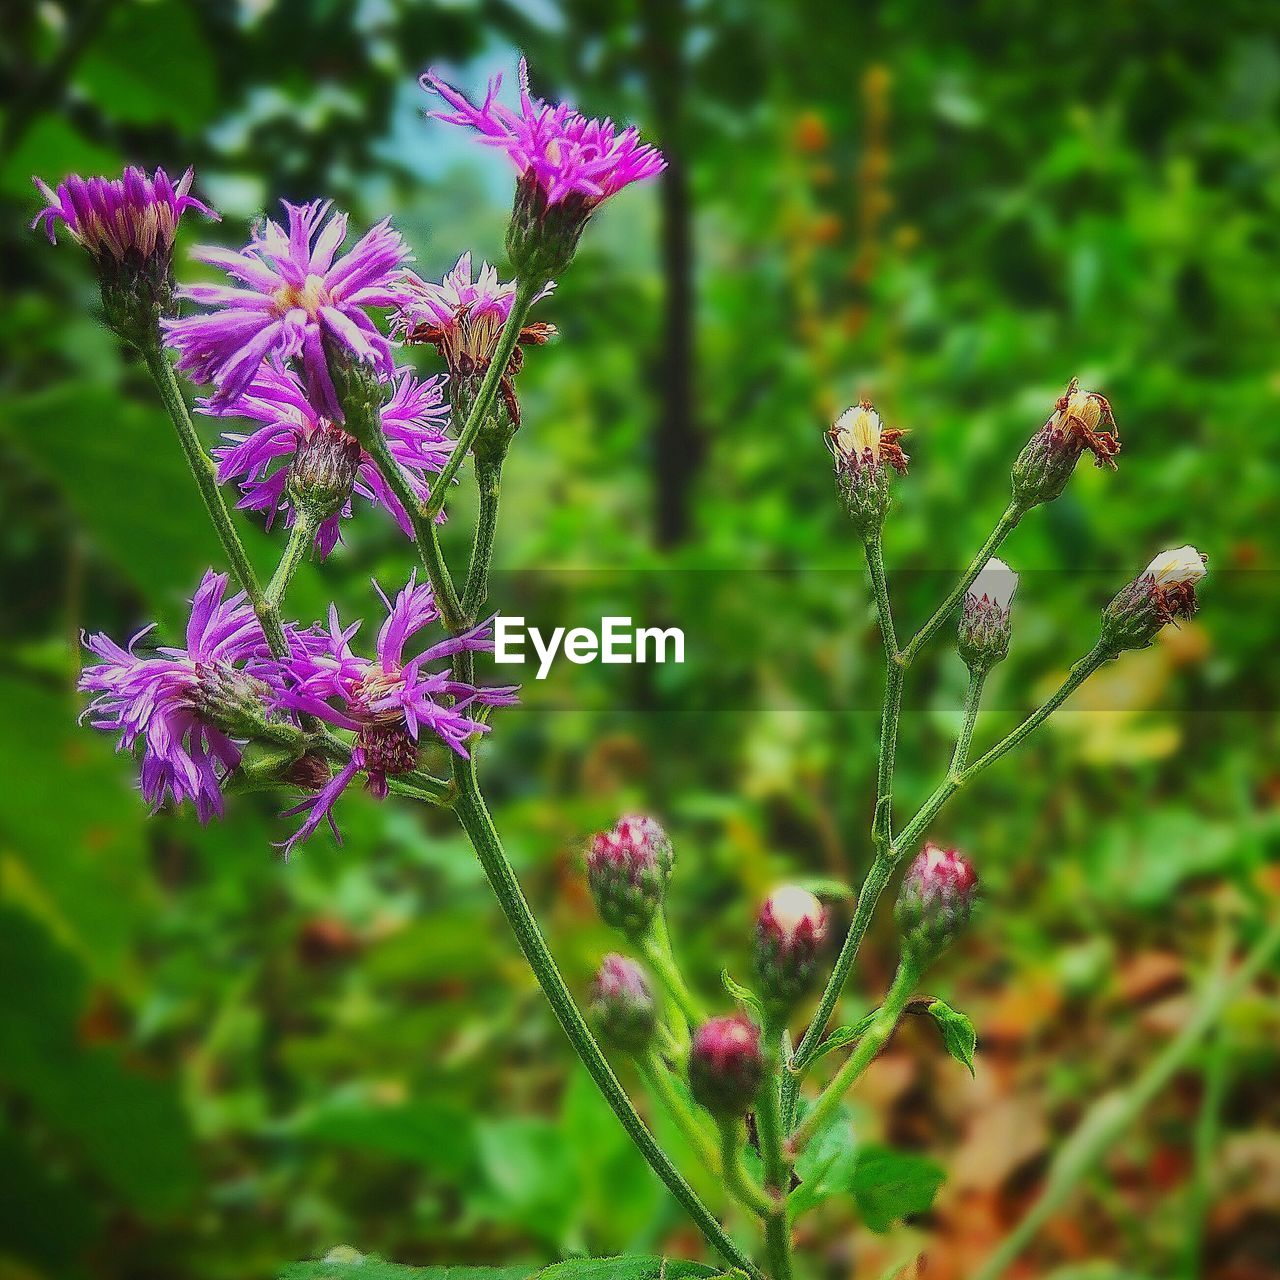 flower, growth, nature, fragility, plant, purple, beauty in nature, day, freshness, outdoors, no people, petal, flower head, focus on foreground, close-up